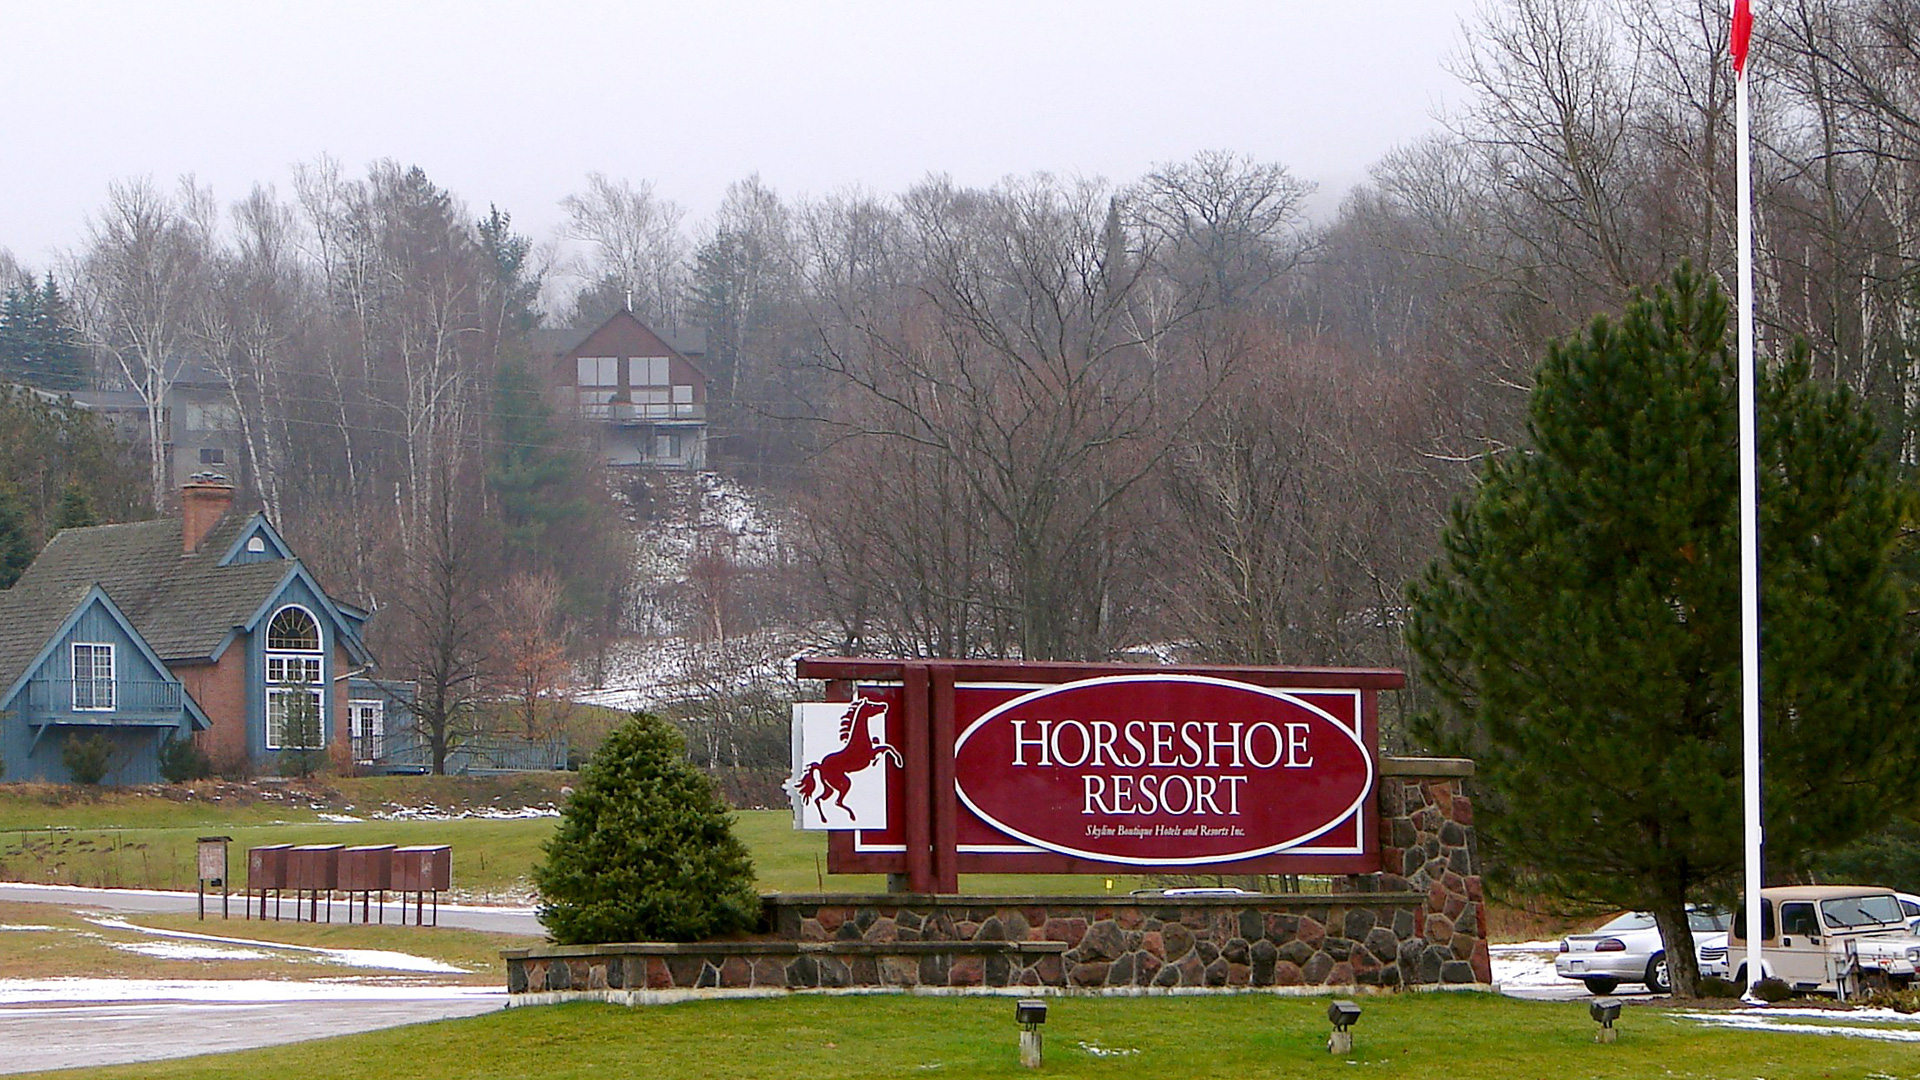 1990's Horseshoe Resort Residences Image to show History